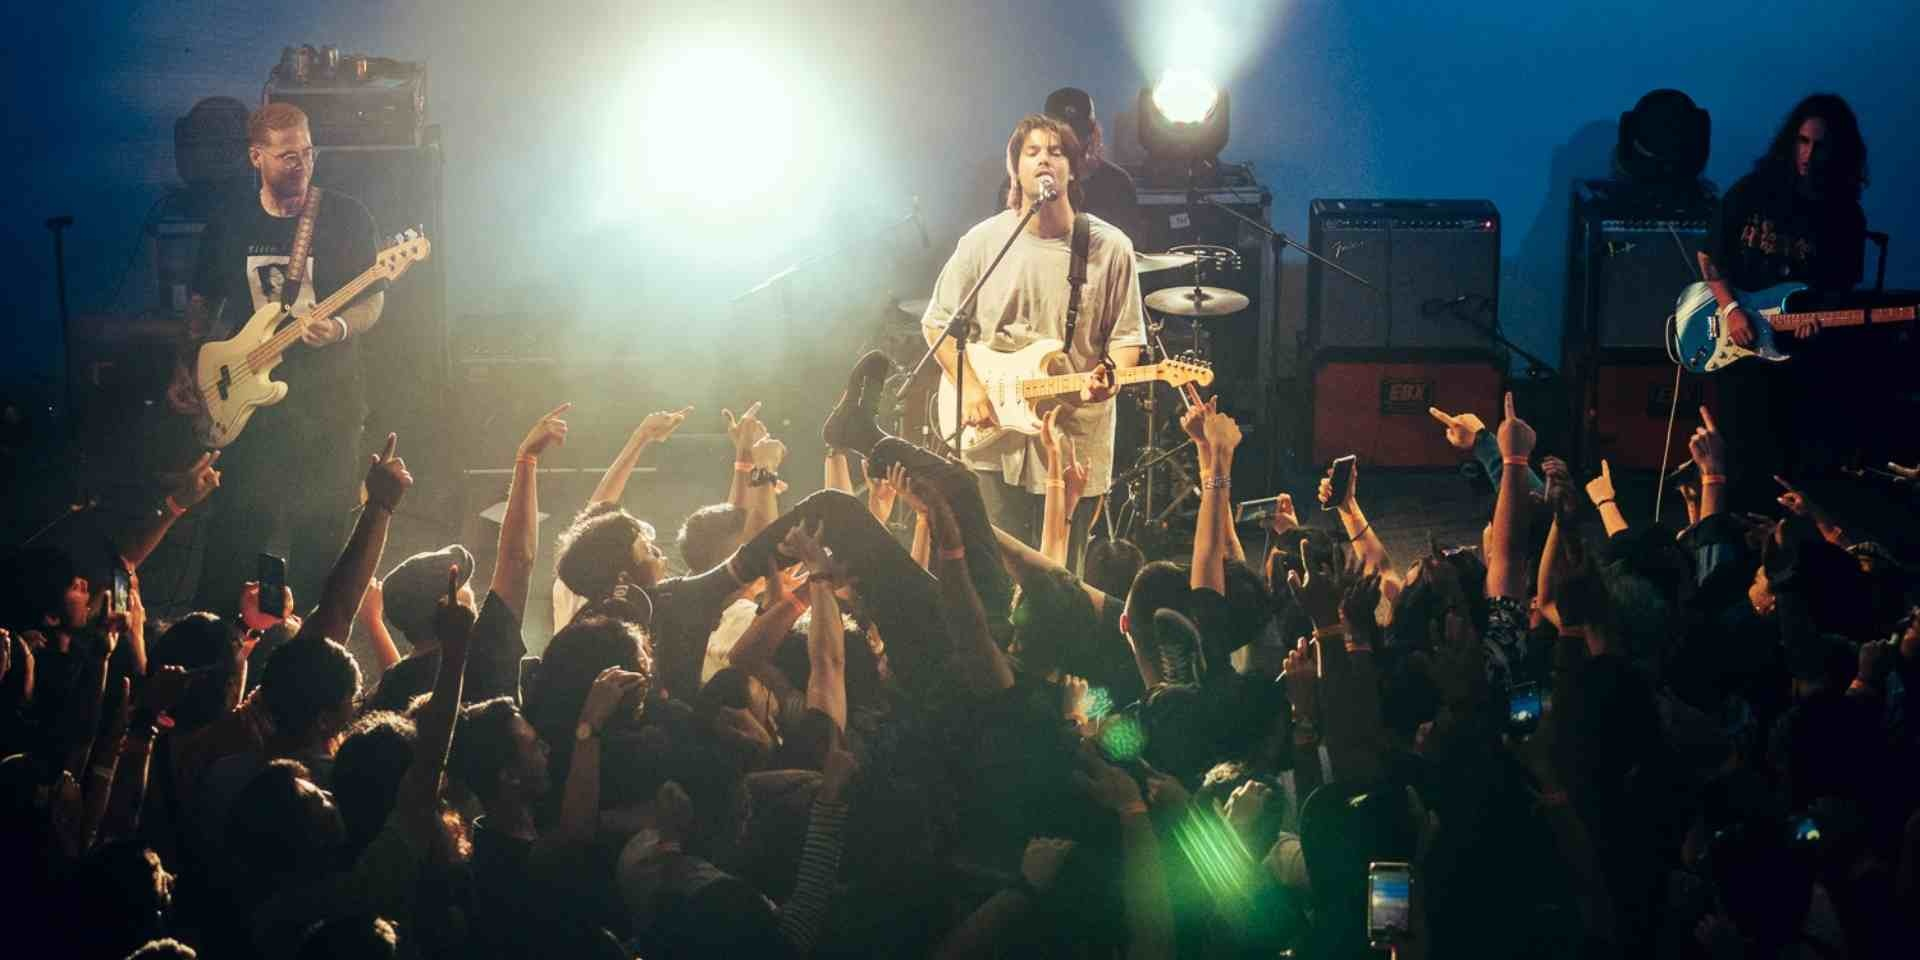 Turnover puts on an utterly mesmerising display at Singapore show – watch